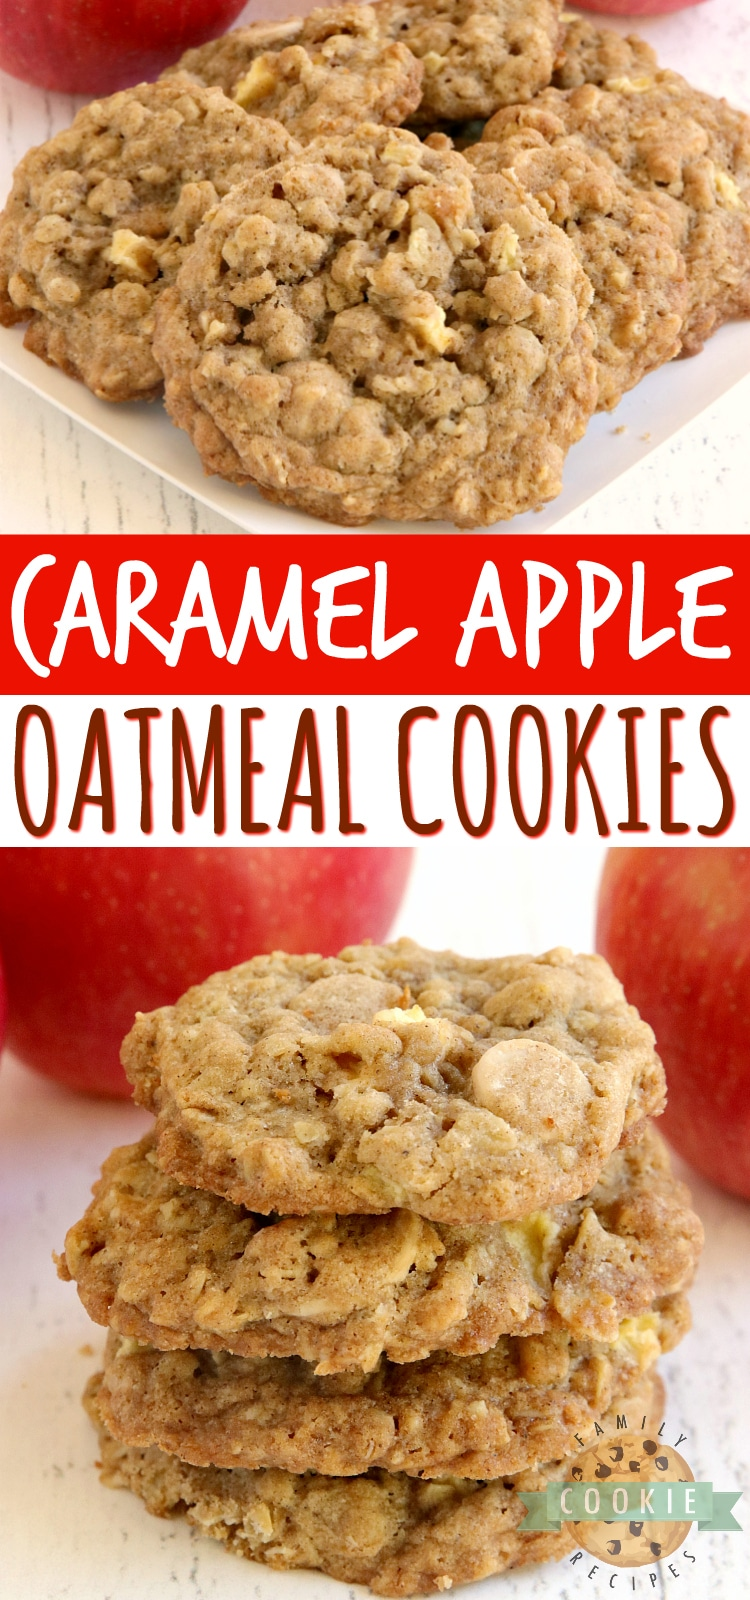 Caramel Apple Oatmeal Cookies are soft, chewy and full of fresh apples and caramel baking chips. Perfect cookie recipe for fall! via @buttergirls